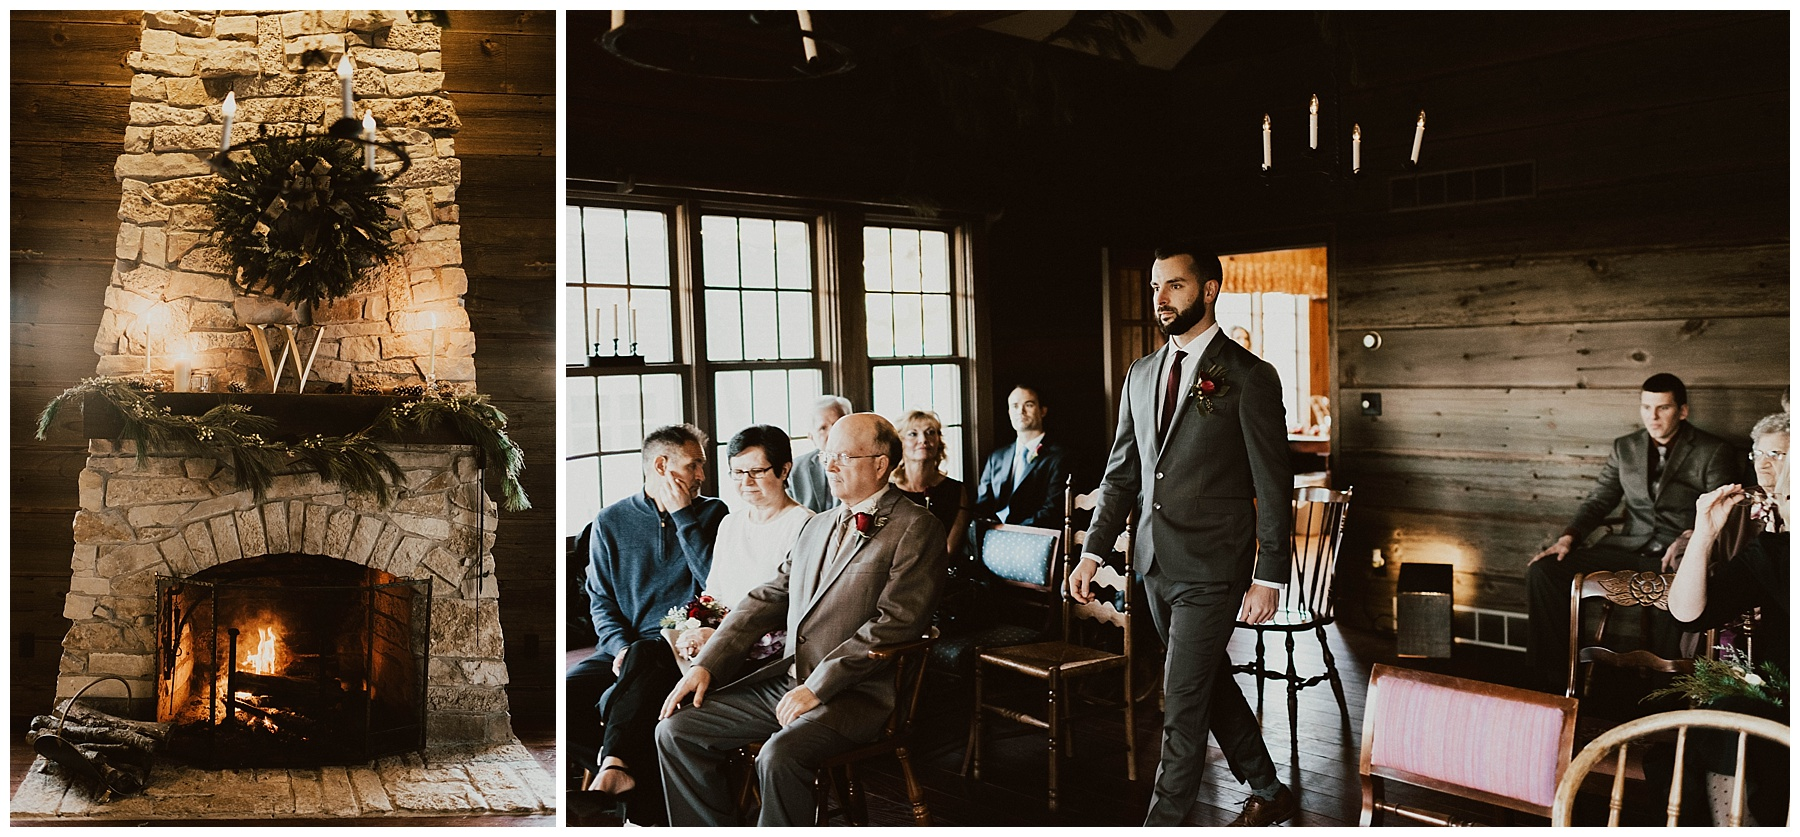 Hannah + Brian    Christmas Cabin Wedding – Lauren F.otography 4c131068723